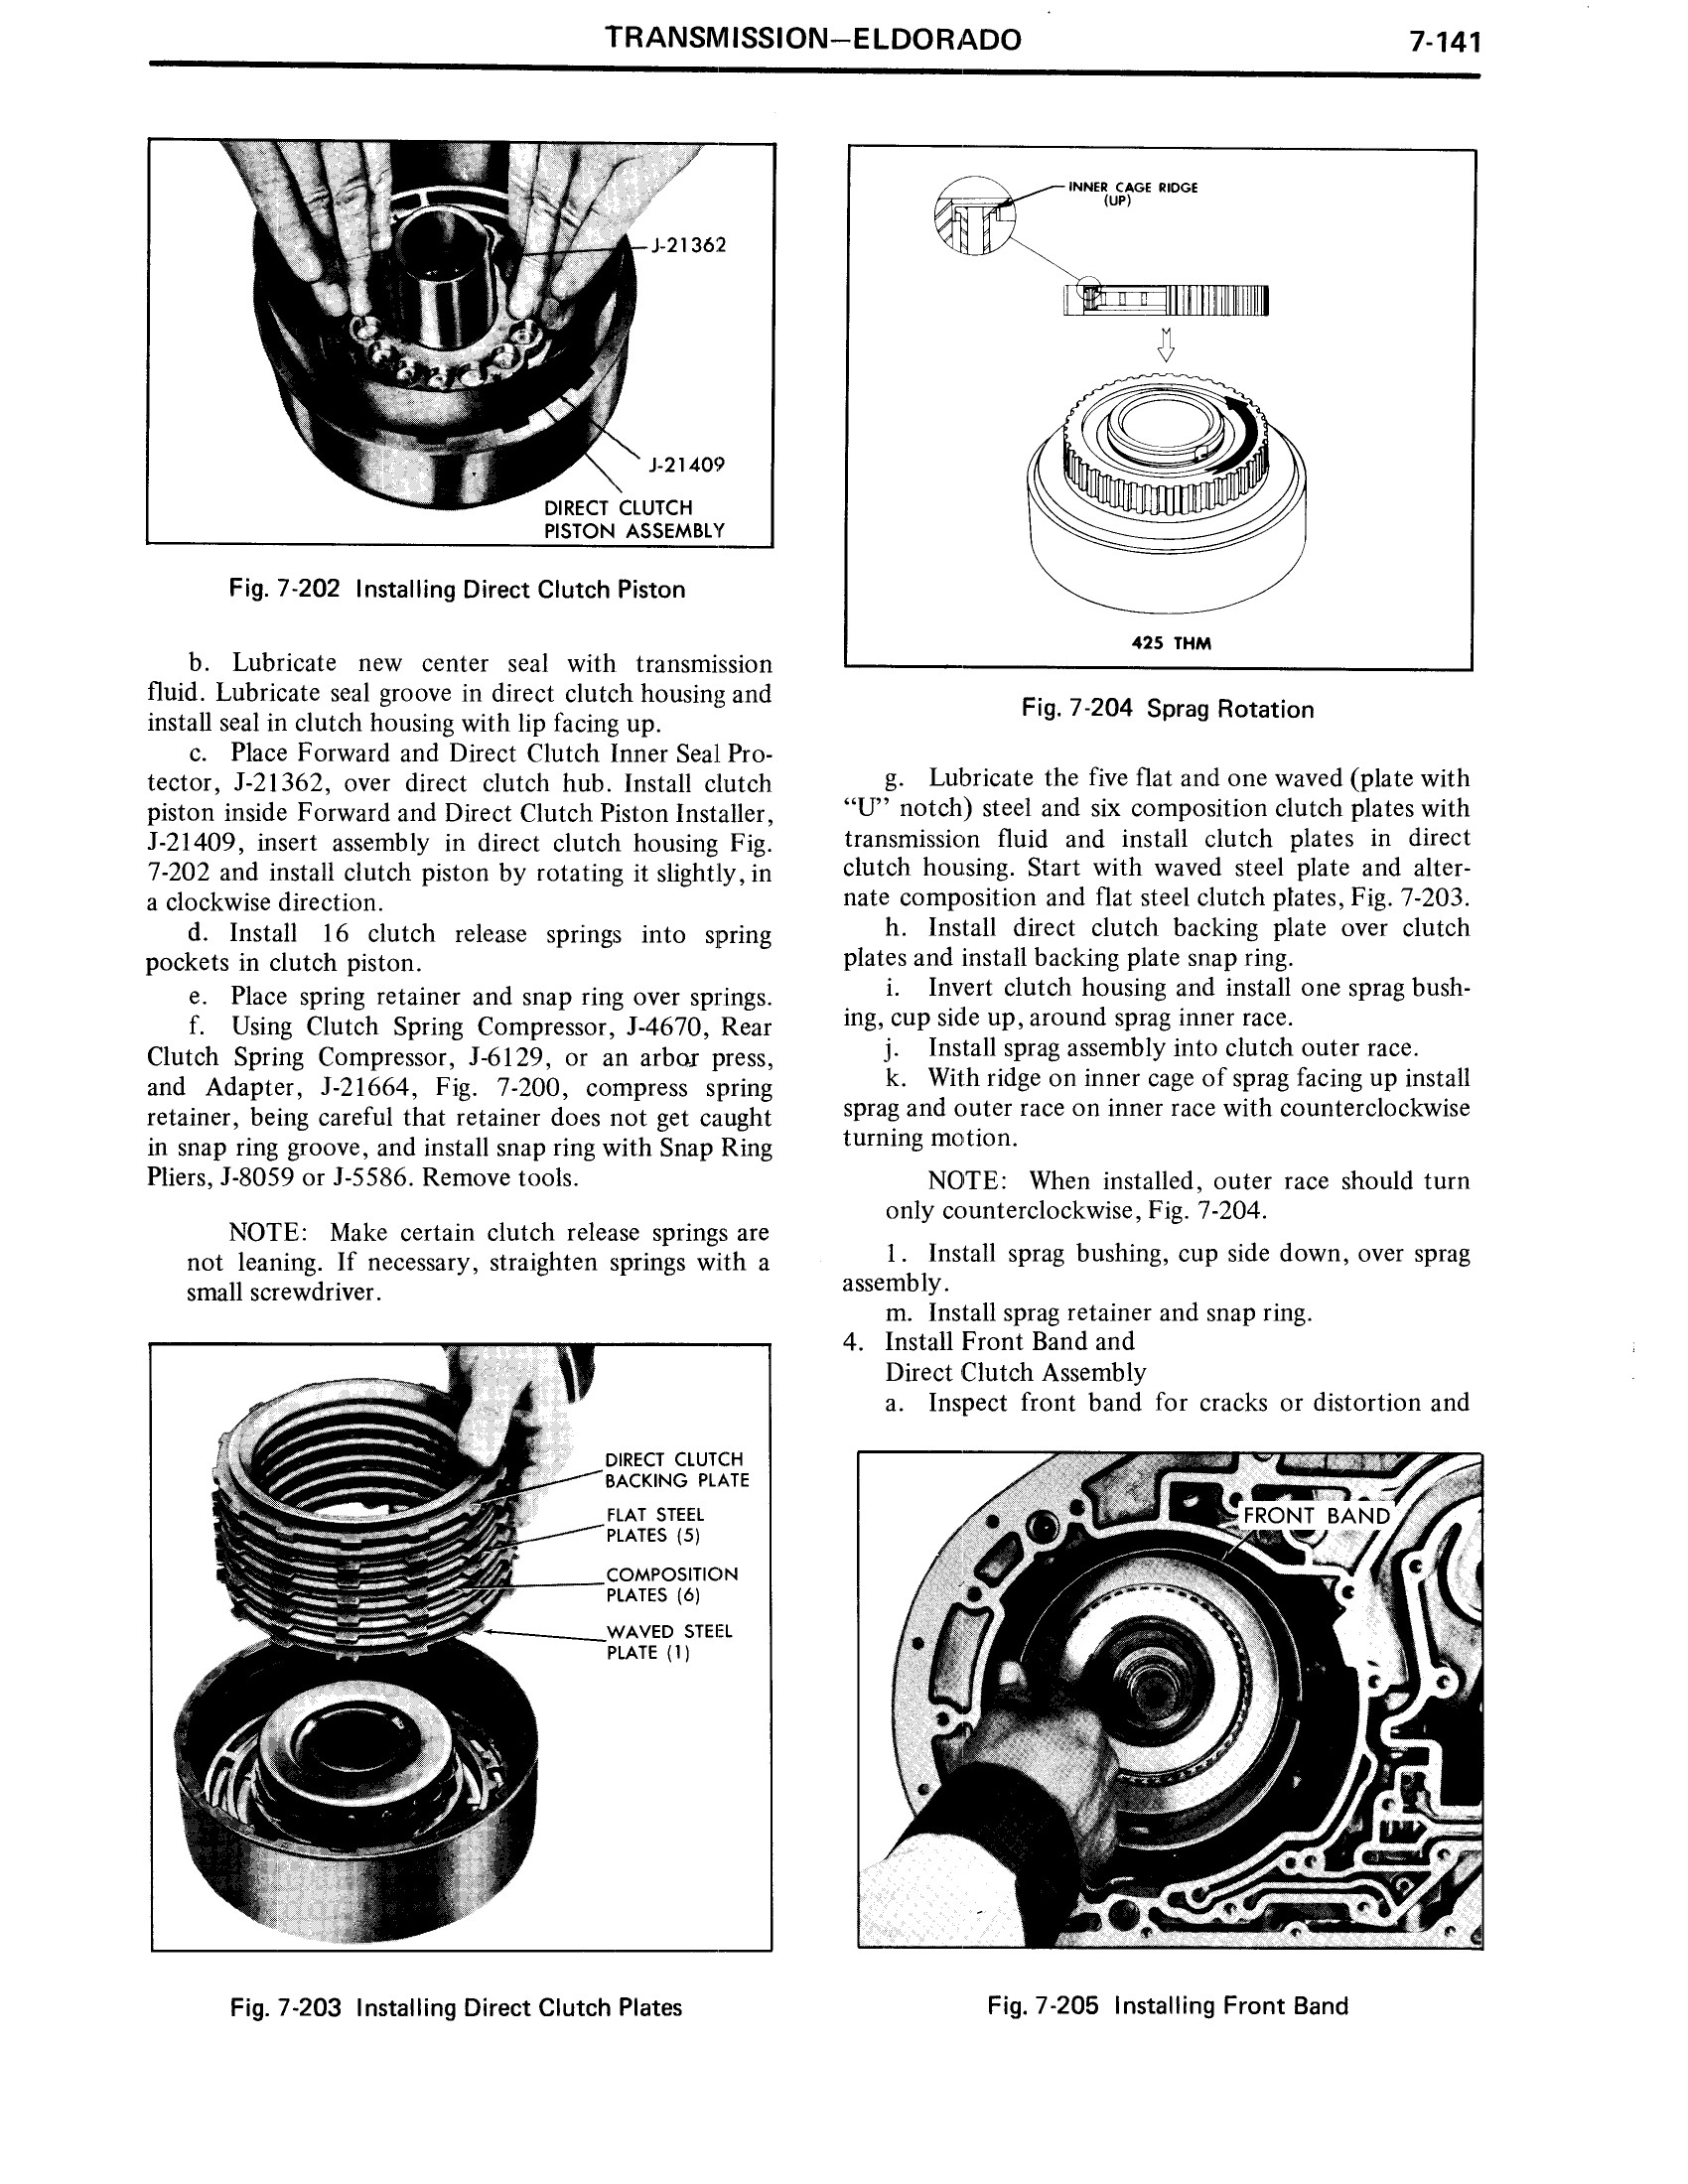 1971 Cadillac Shop Manual- Transmission Page 141 of 156